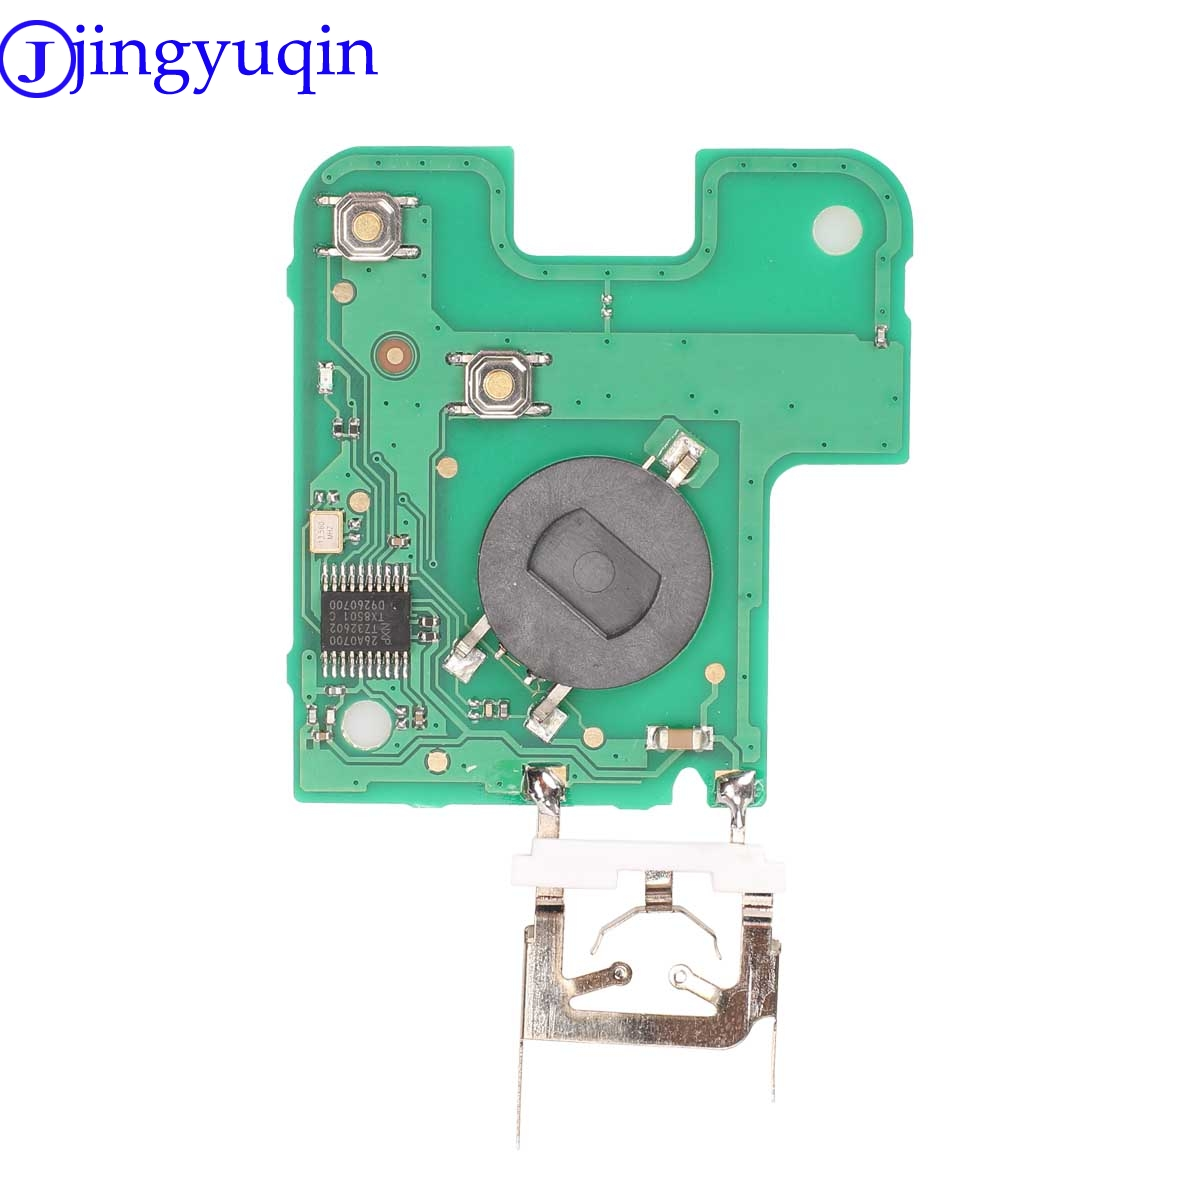 Image 4 - jingyuqin 433 MHz Pcf7947 Chip 2 Buttons Remote Car Key Card Shell Case With Blade For Renault Laguna with Uncut Key Blade-in Car Key from Automobiles & Motorcycles